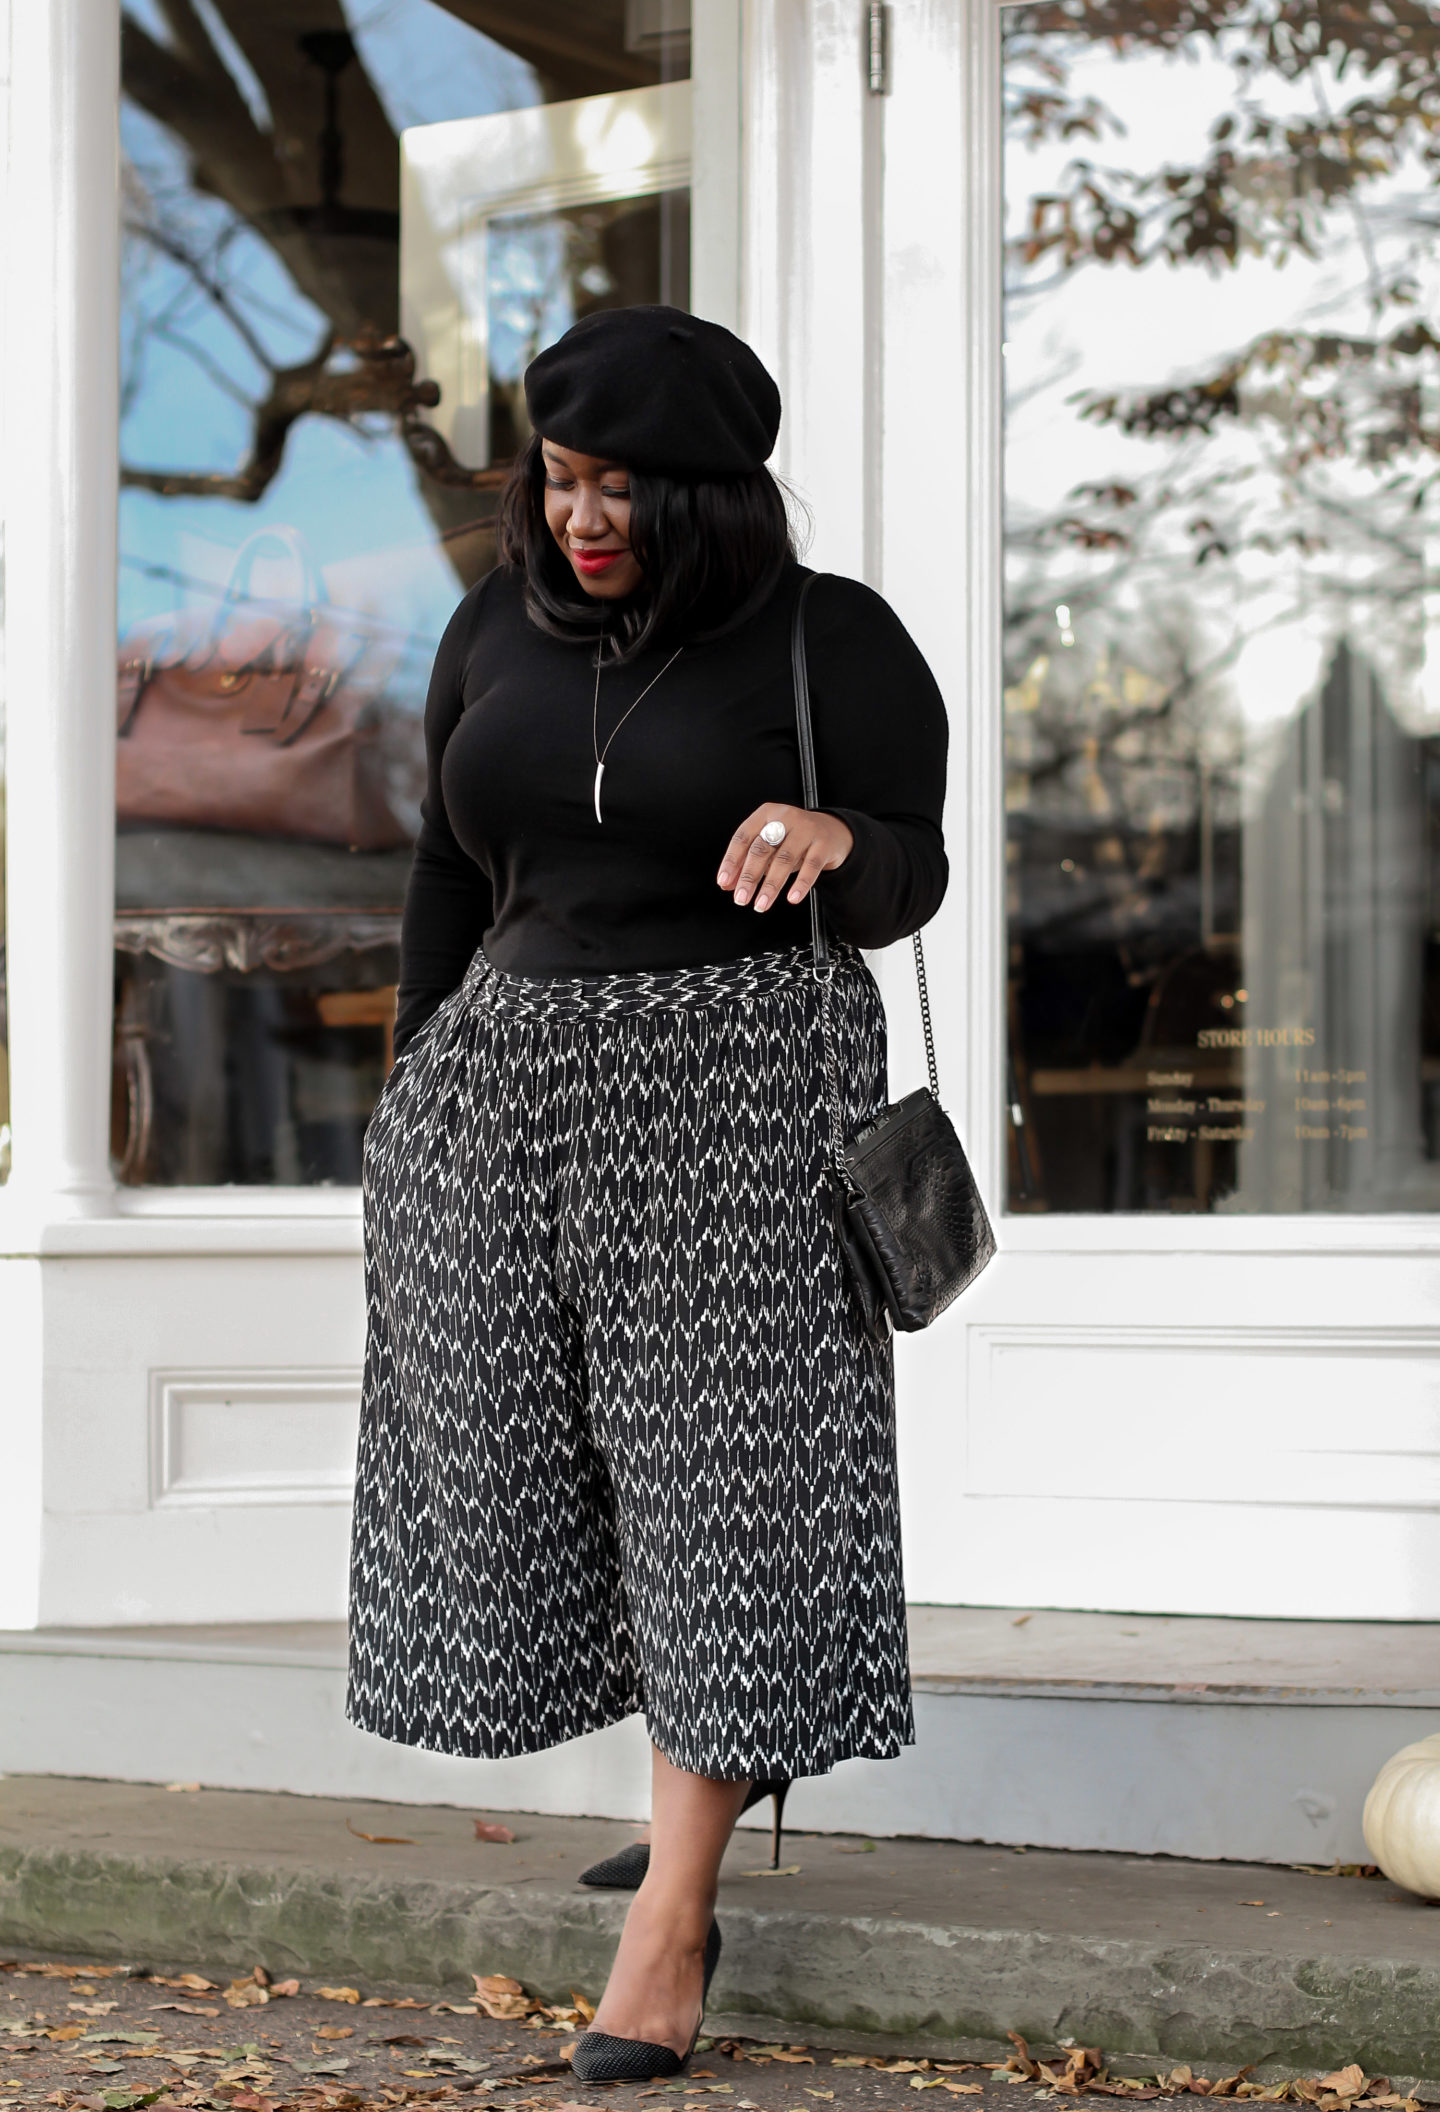 Plus Size Fashion for Women • Plus Size Wide-Leg Pants Outfit Idea • Style Staples | Shapely Chic Sheri